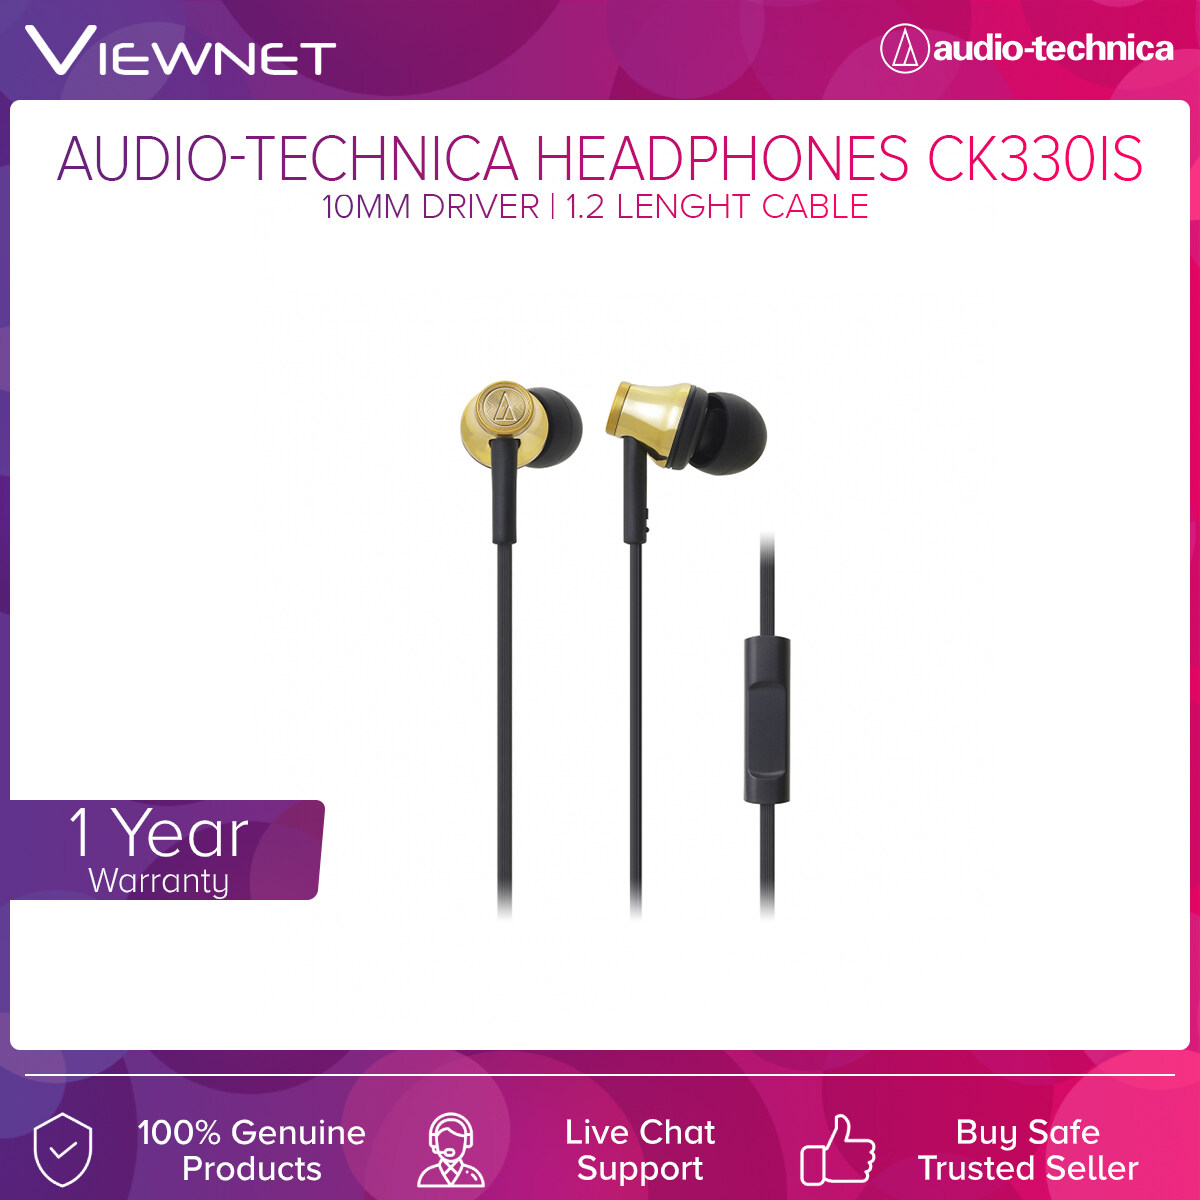 Audio-Technica Headphones ATH-CK330IS with 10mm Driver, 20- 23,000 Hz Frequency, 1.2m Length Cable, Gold-Plated 3.5mm Audio Jack